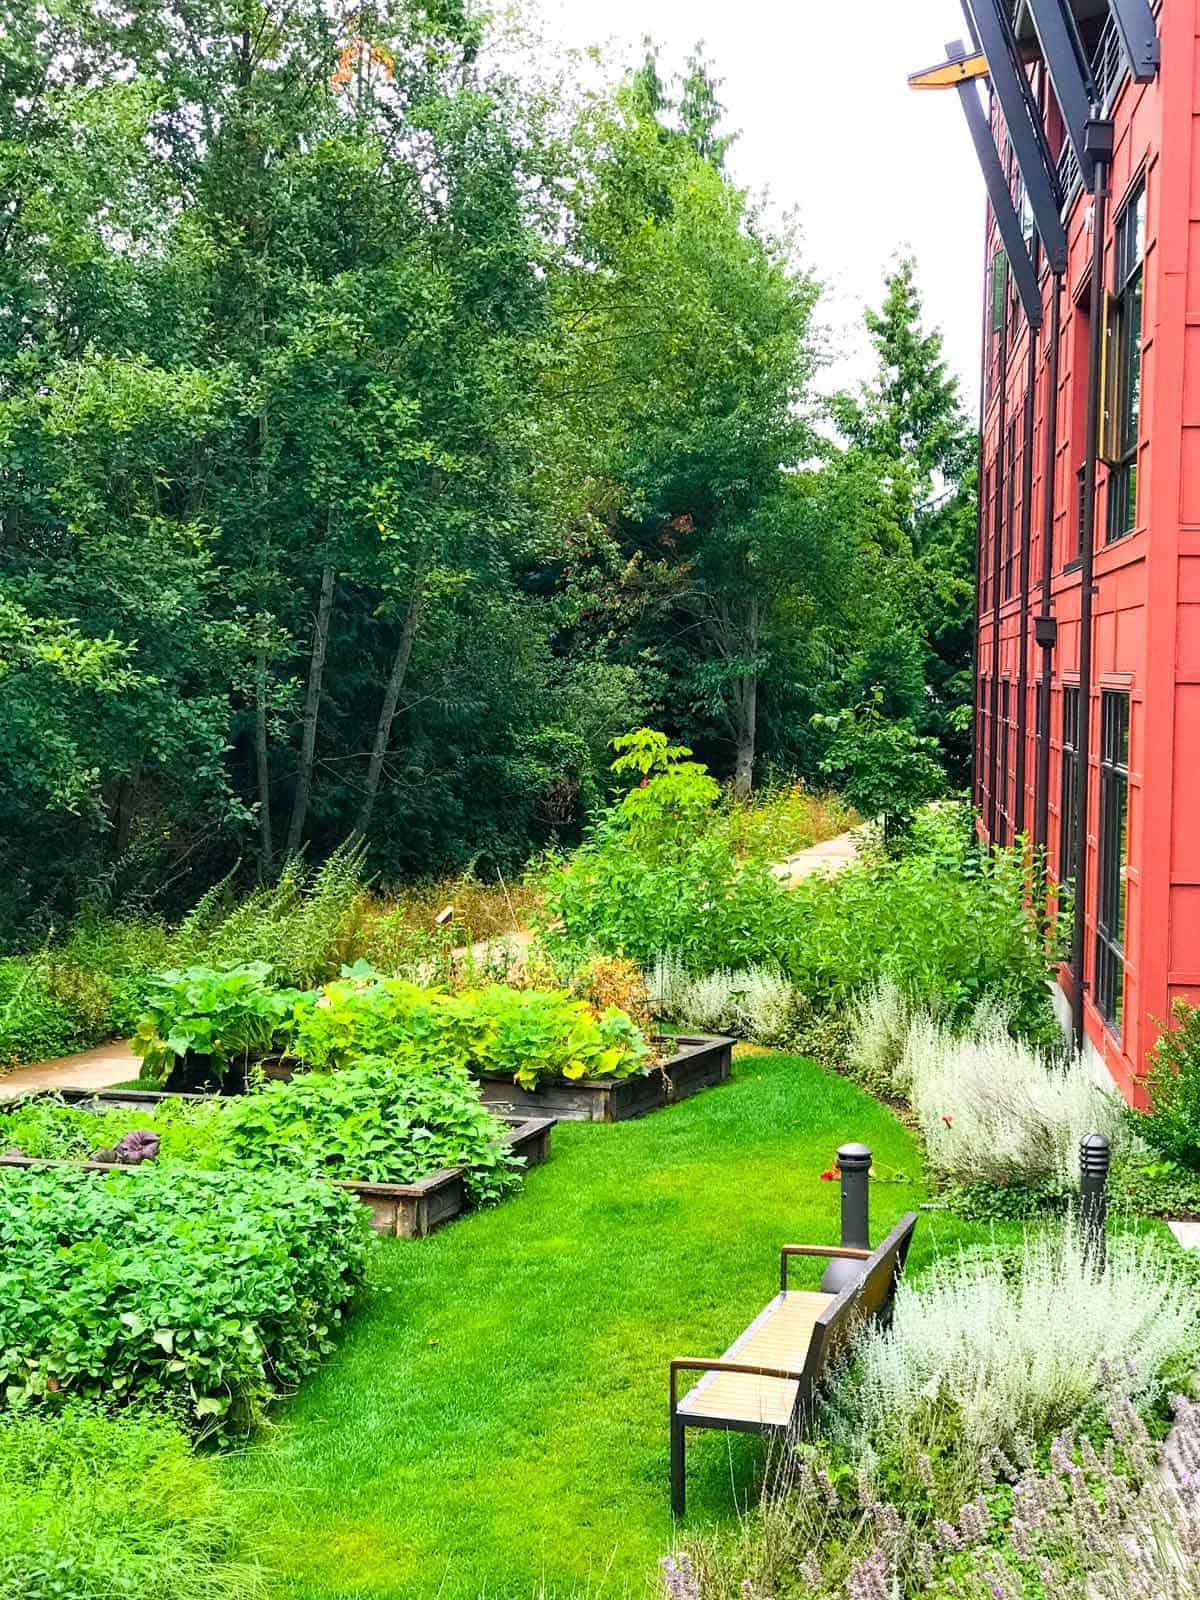 Our room at Cedarbrook lodge was on the second floor overlooked the Chef's vegetable and herb garden.